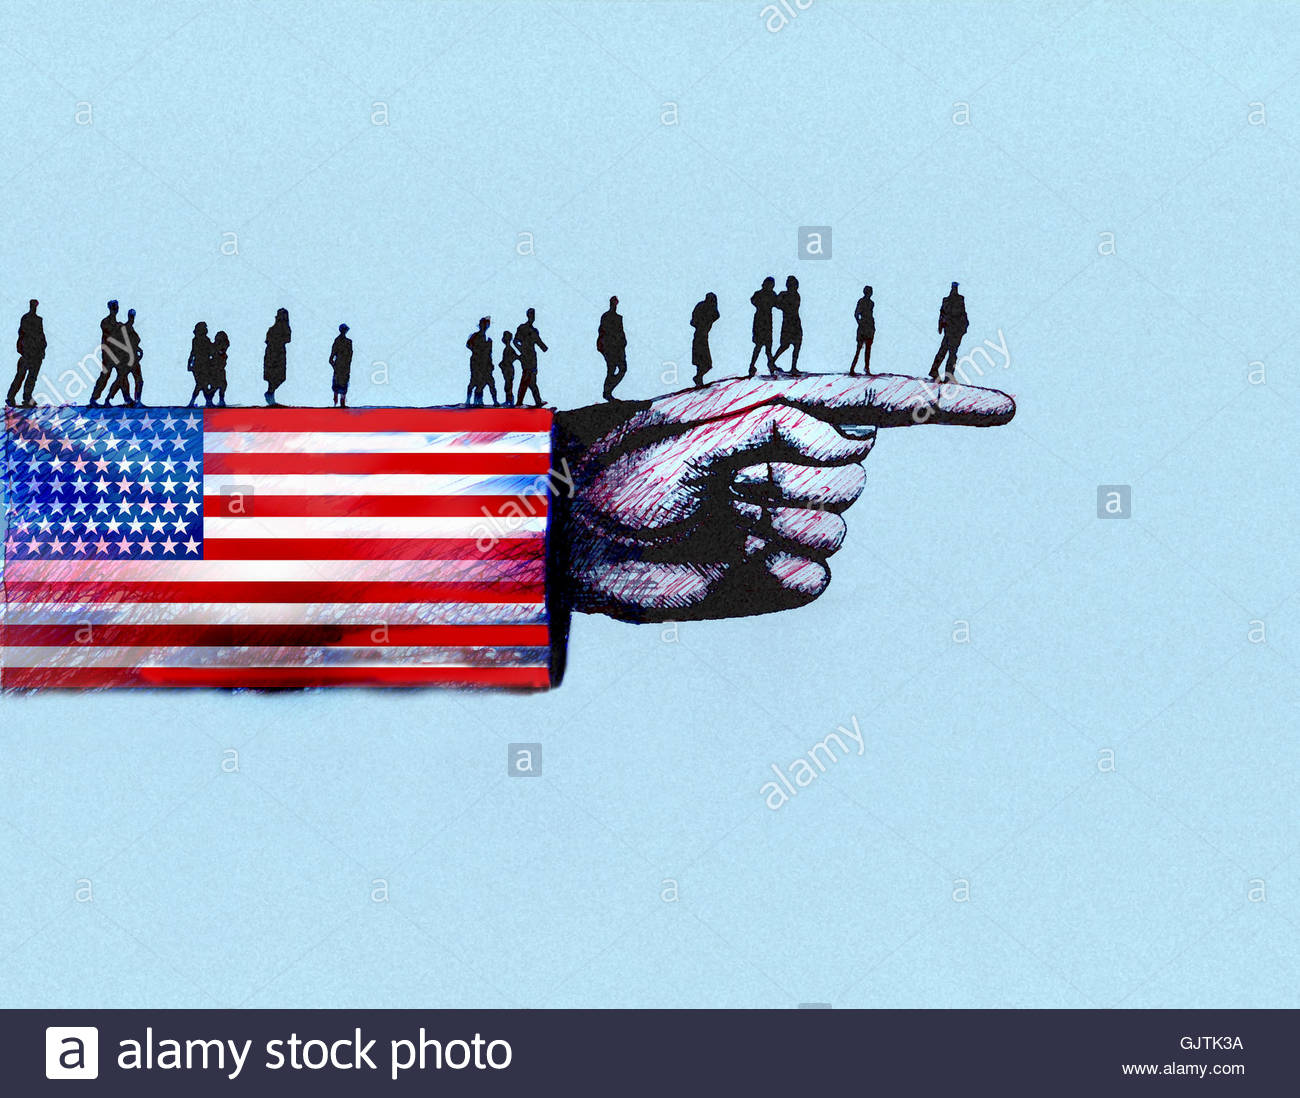 People walking along arm in United States Stars and Stripes flag in direction of pointing finger - Stock Image